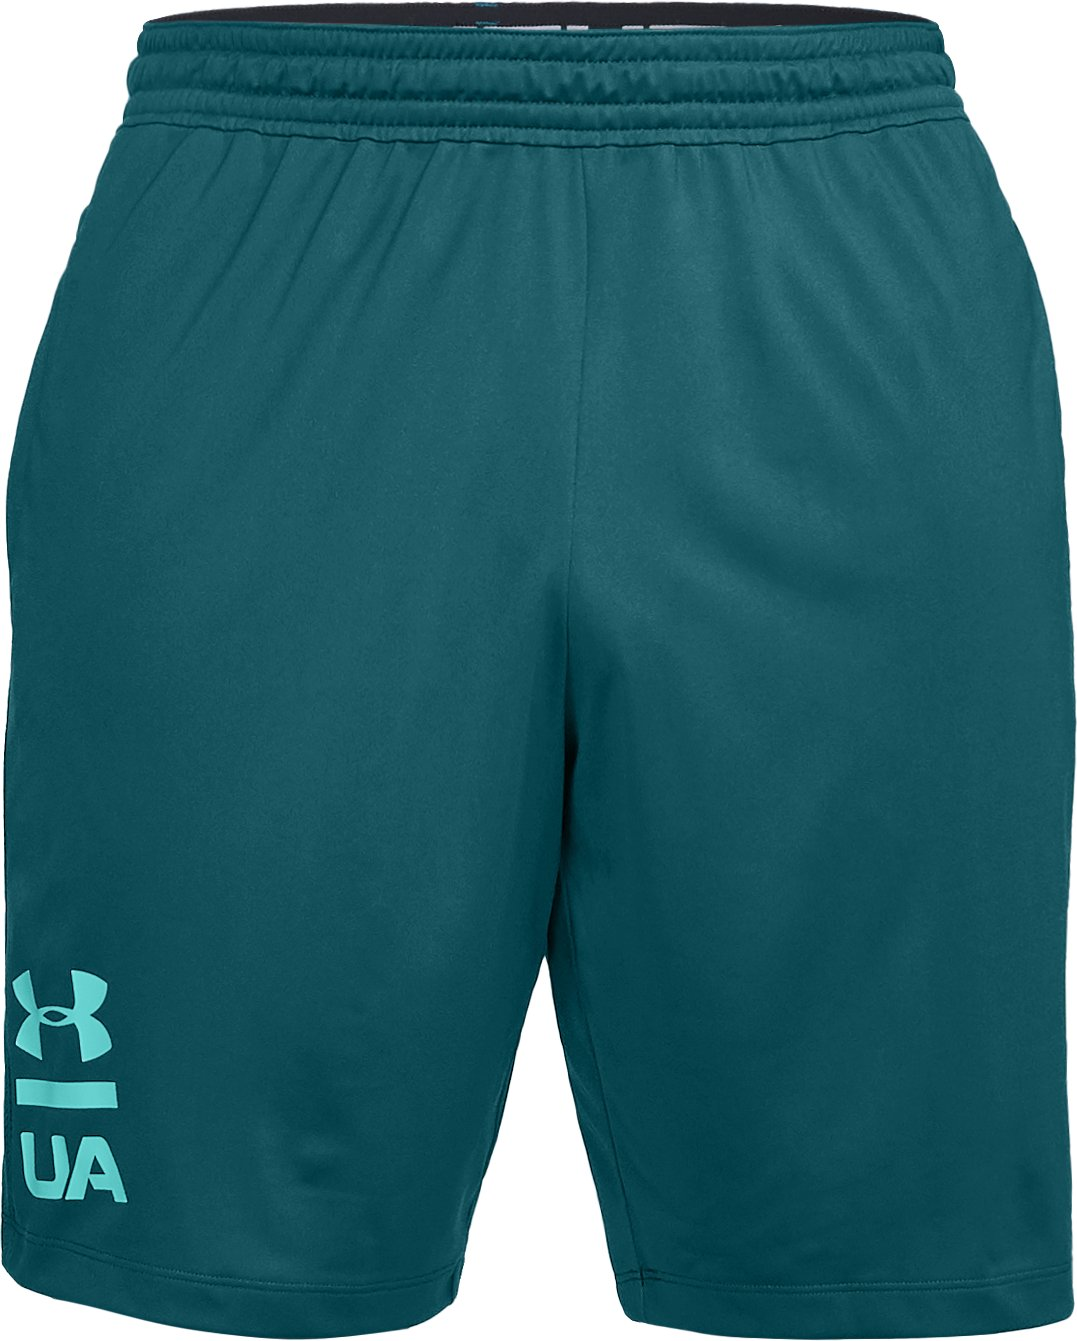 Men's UA MK-1 Graphic Shorts, TOURMALINE TEAL,